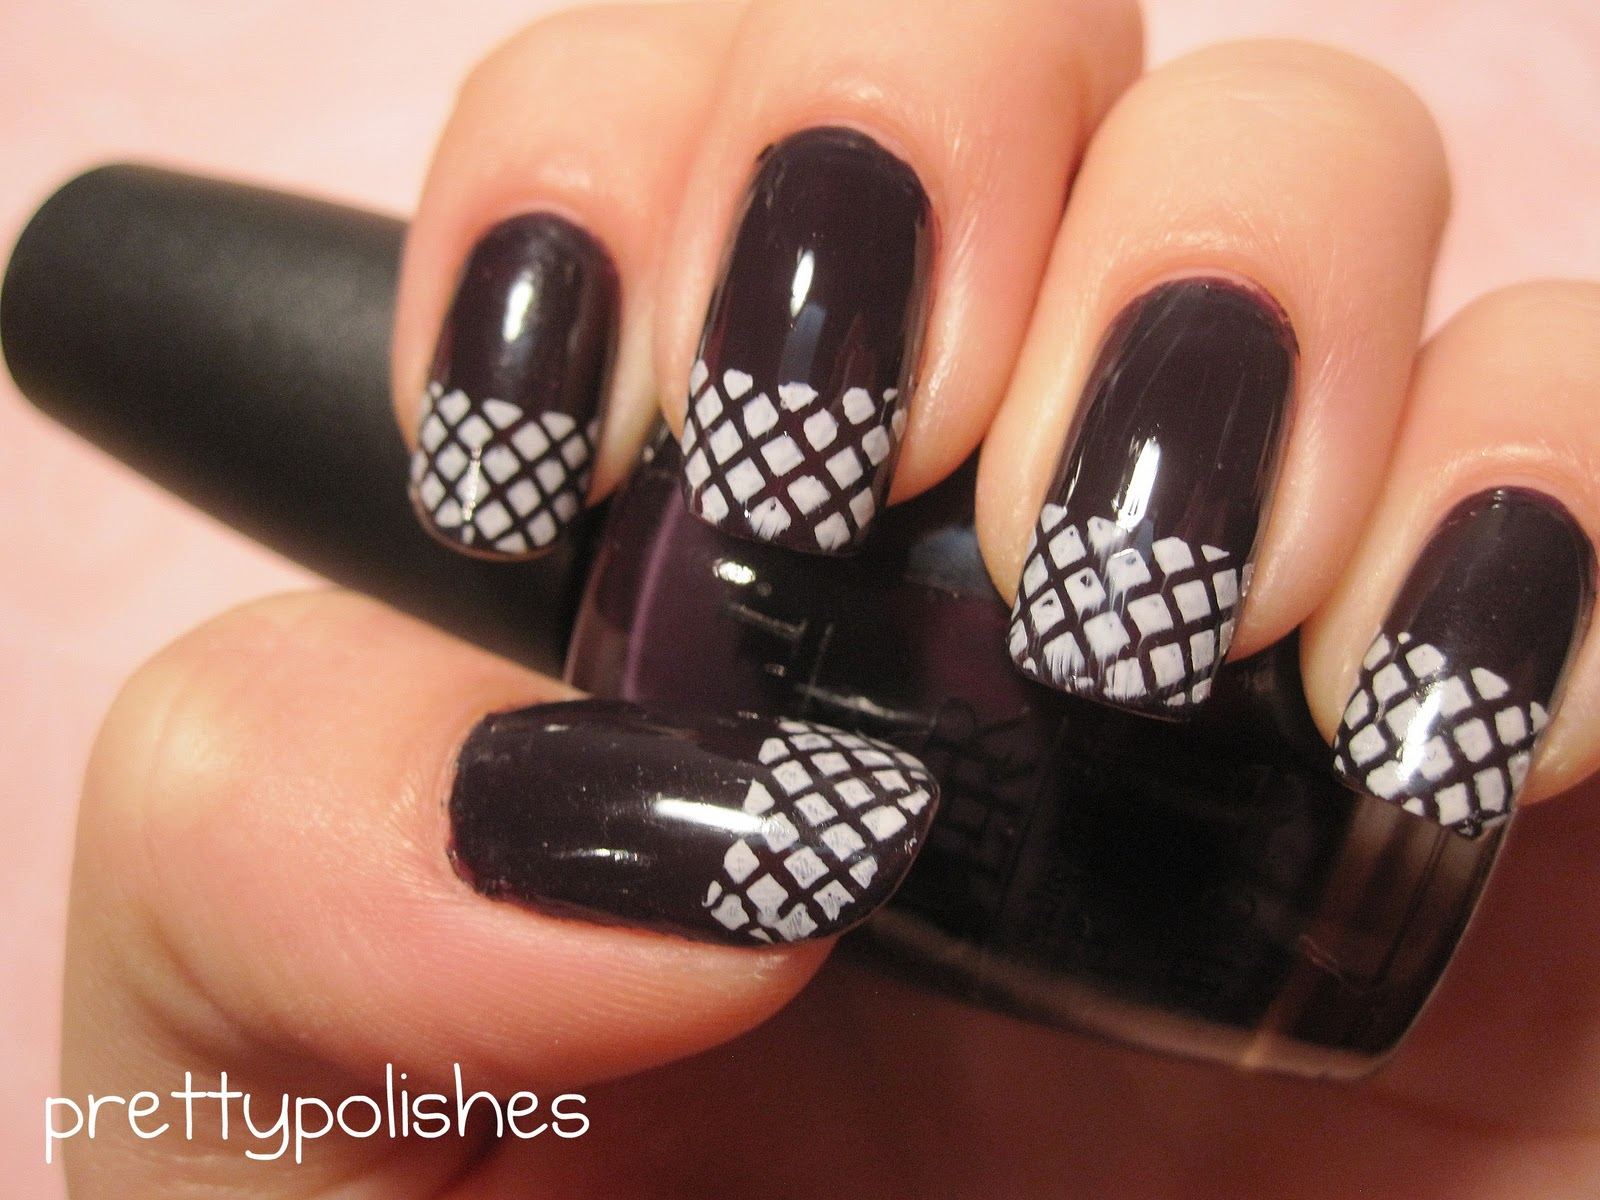 The Excellent Dark purple nail designs Digital Imagery